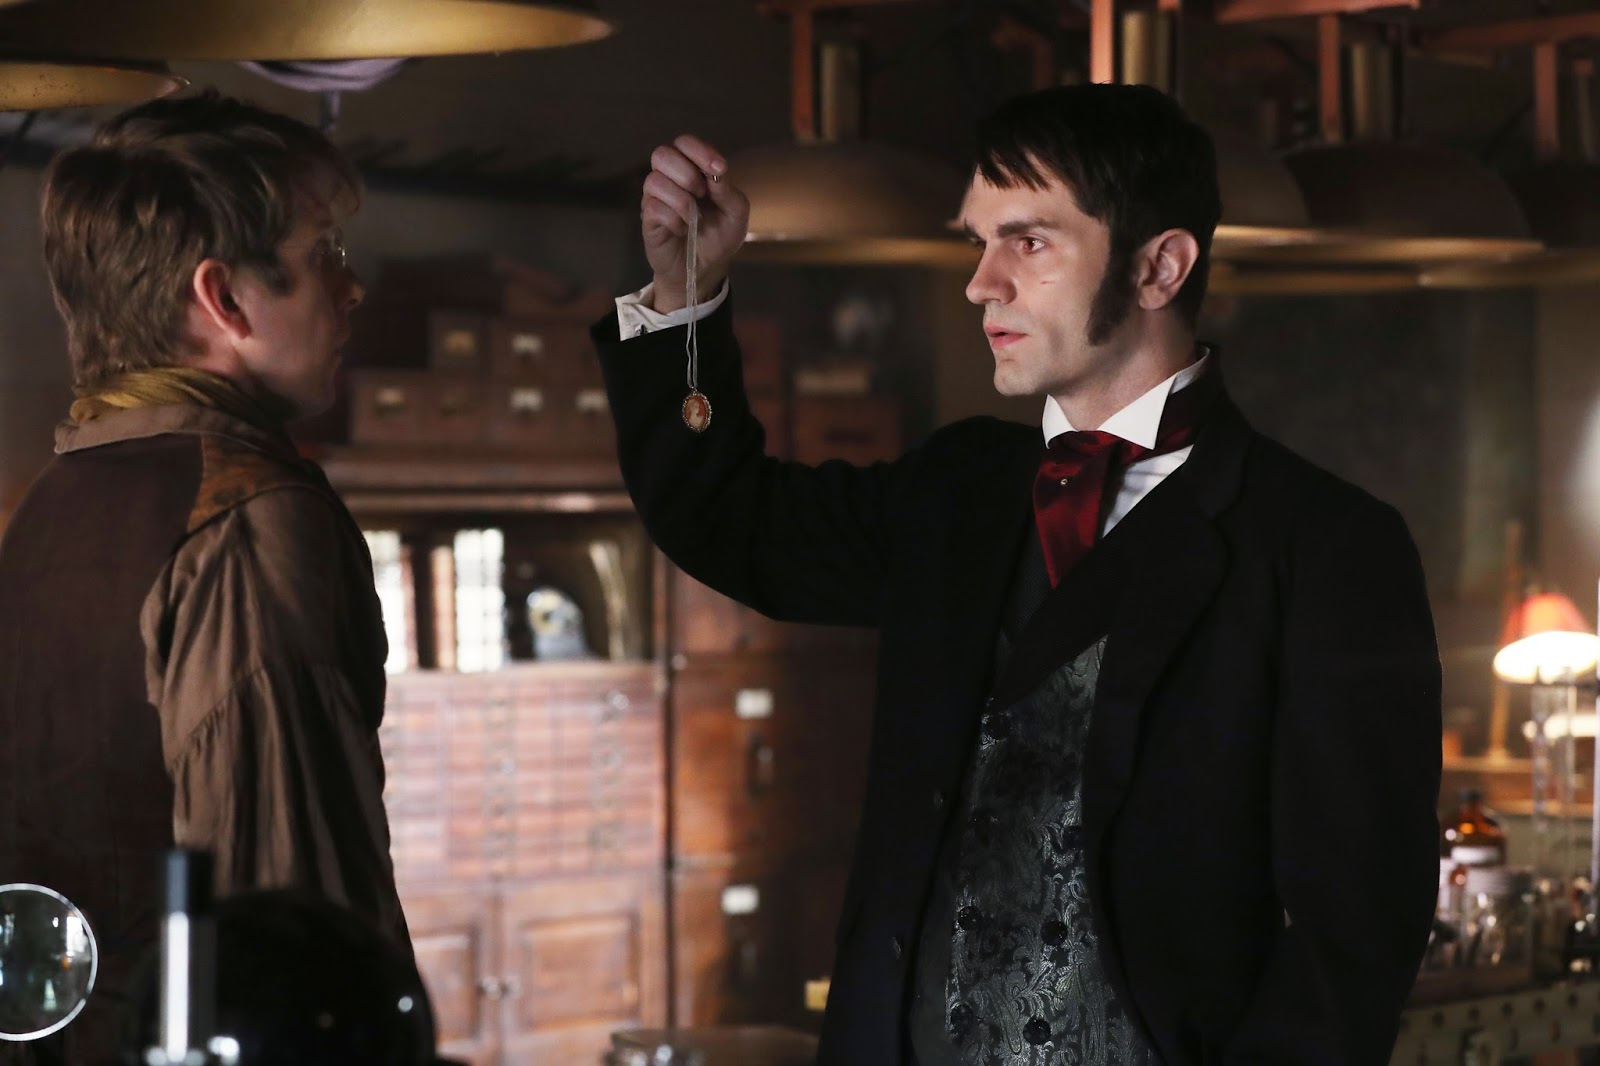 Once Upon a Time 6x04. Mr. Hyde le revela al Dr. Jekyll cómo le ha encontrado enseñándole el camafeo de Mary